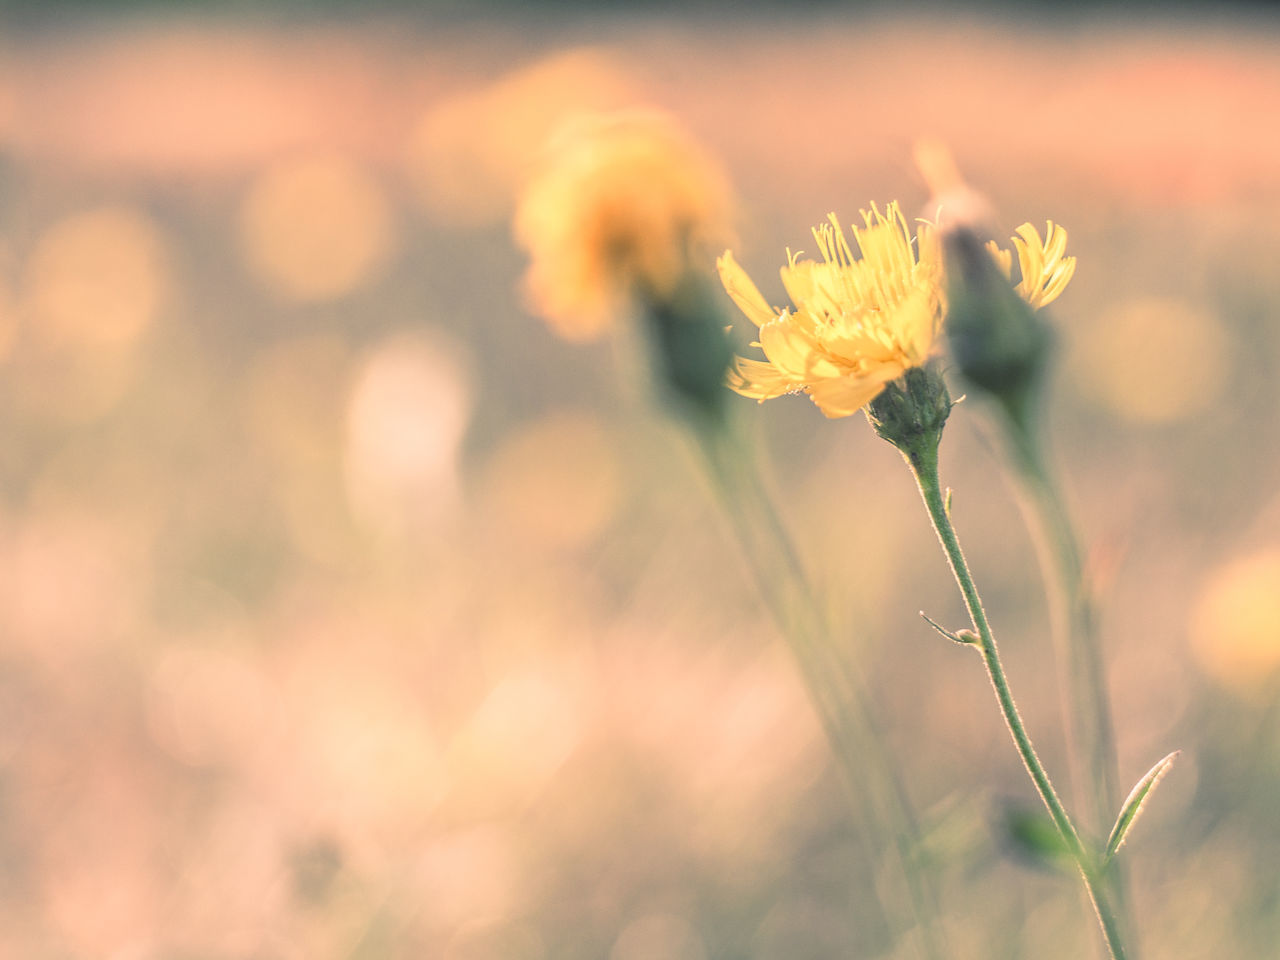 Beauty In Nature Close-up Day Field Flower Flower Head Focus On Foreground Fragility Freshness Growth Nature No People Outdoors Plant